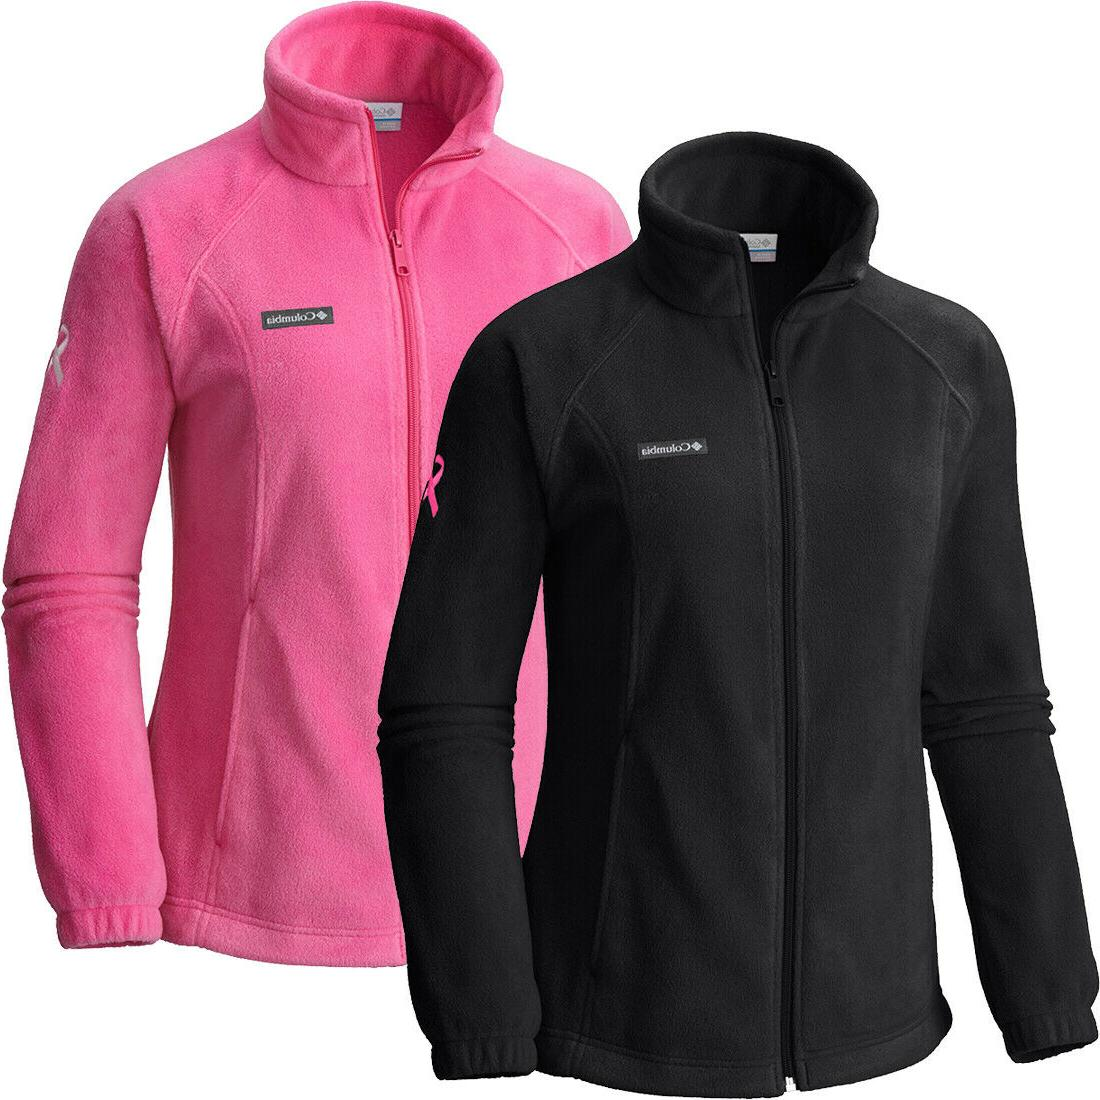 new womens tested tough in pink benton